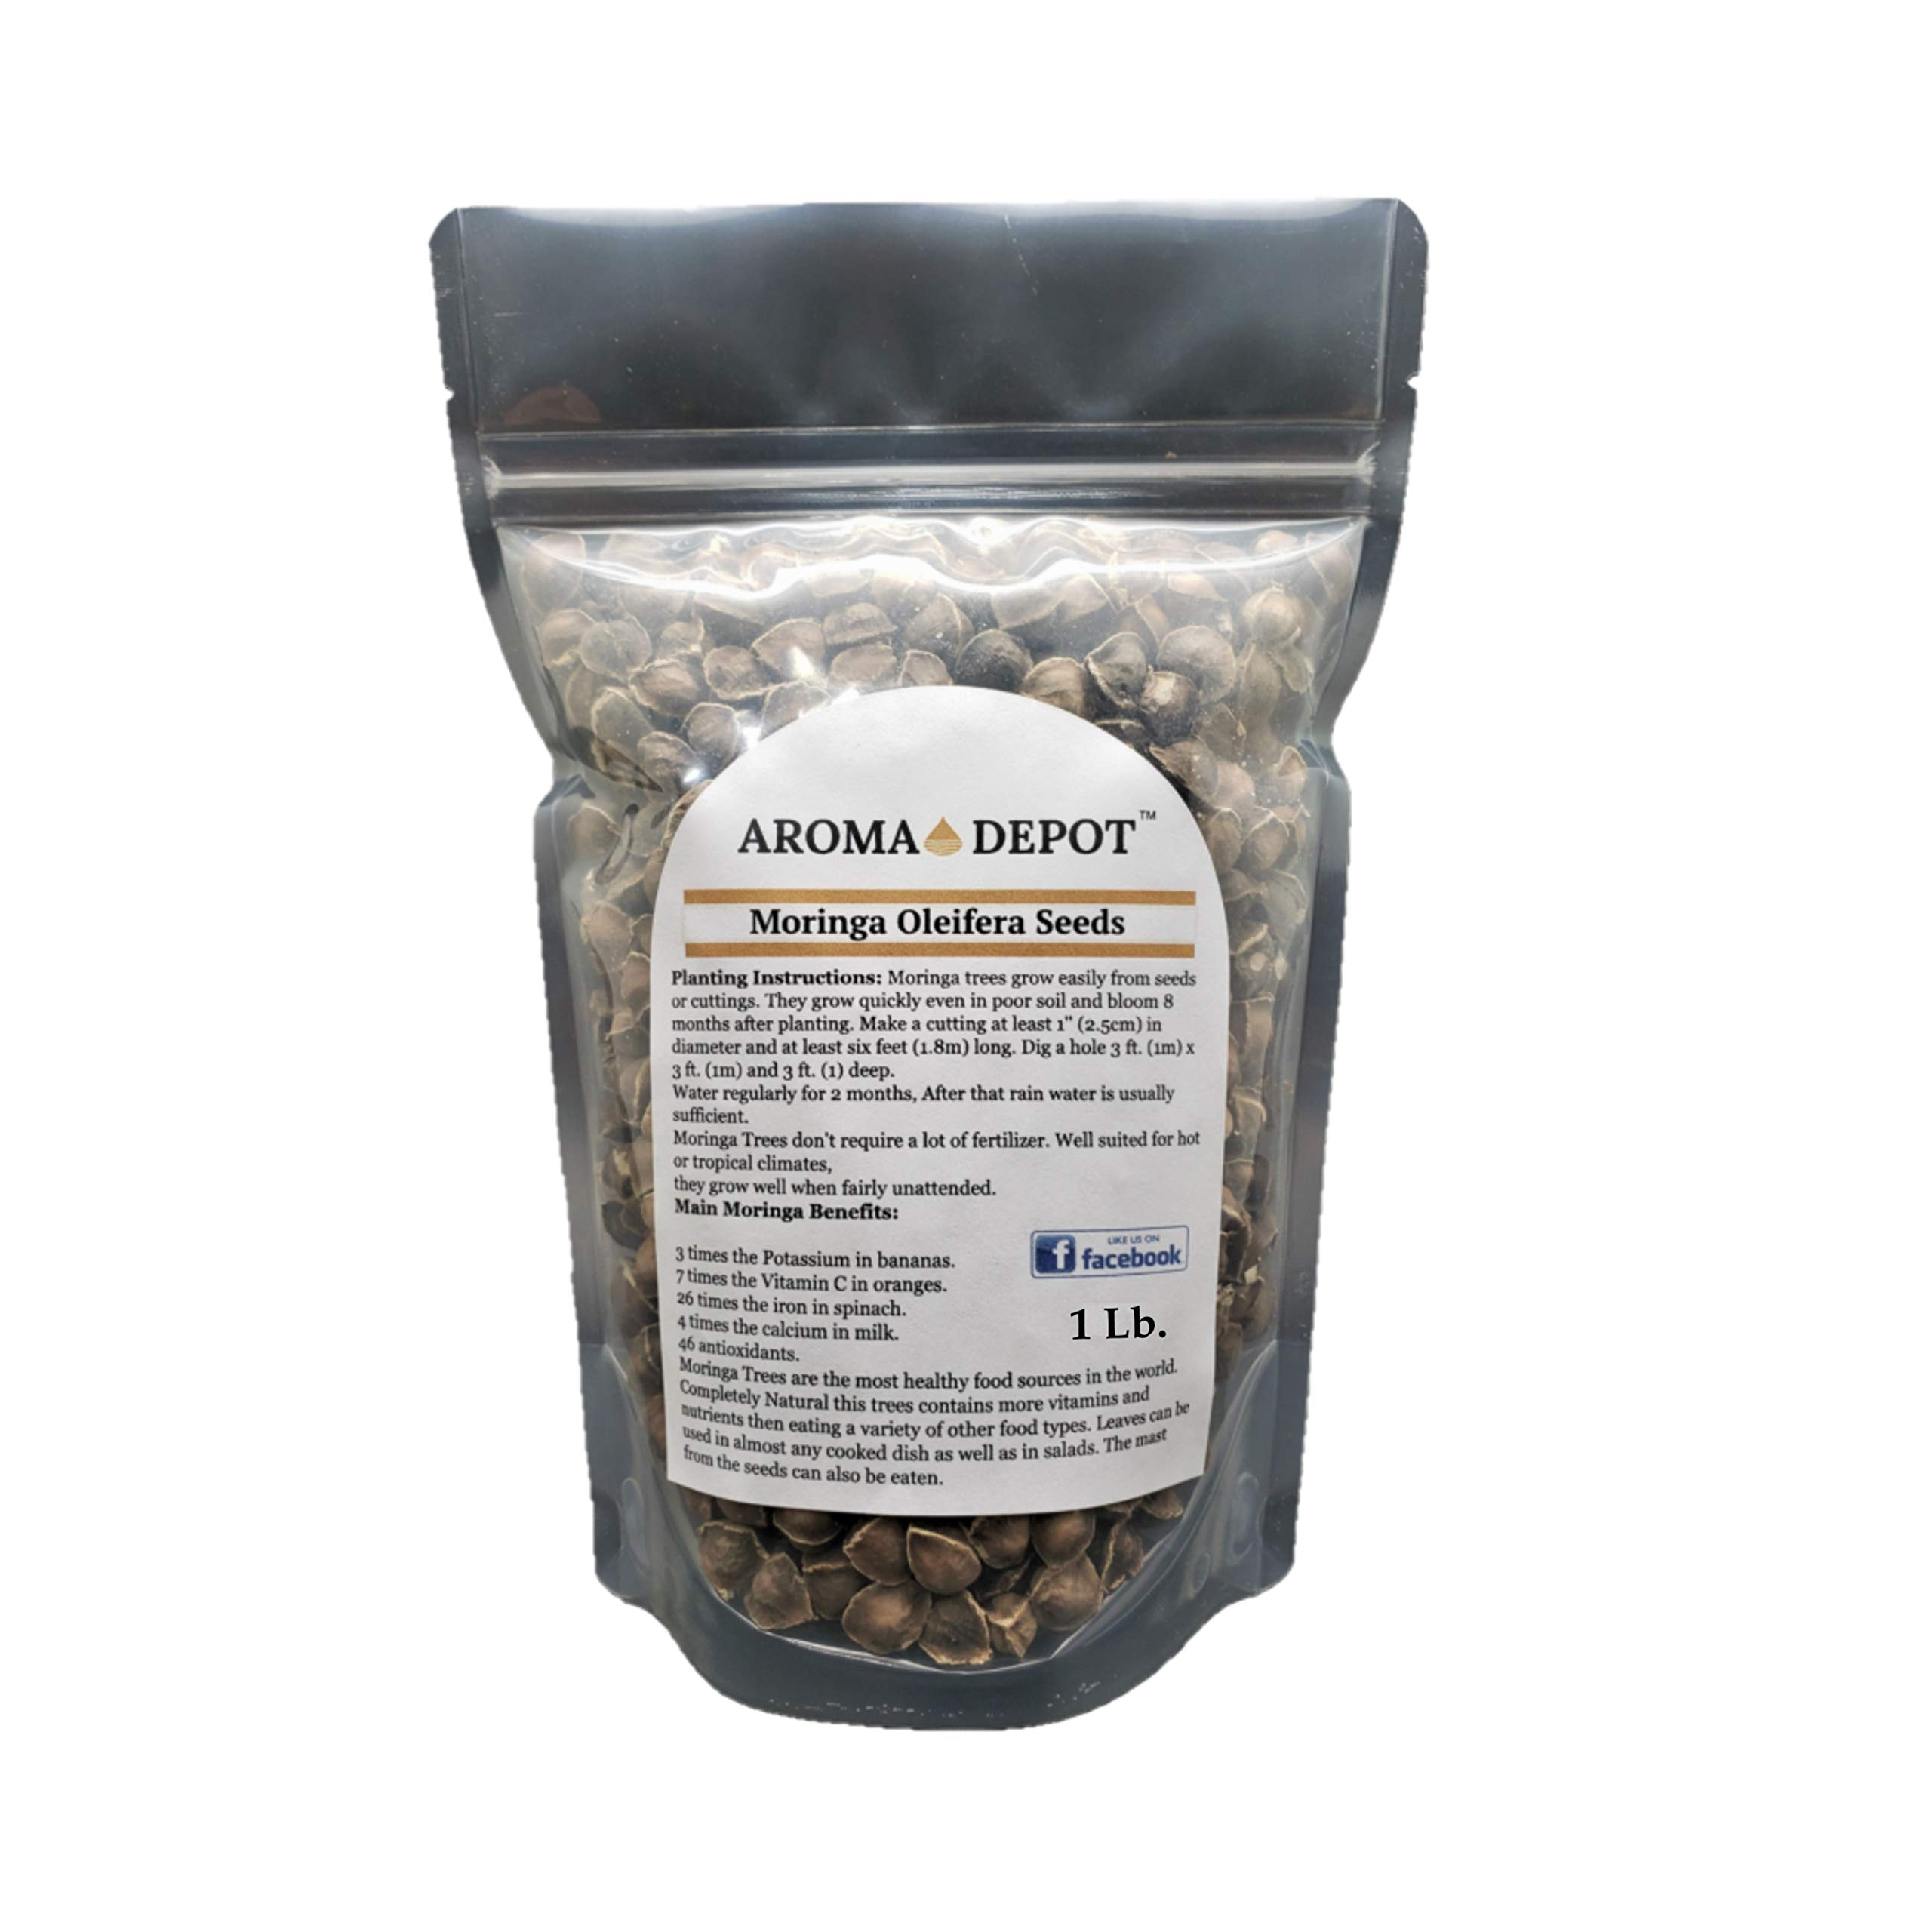 Aroma Depot 1lb / 16 oz Moringa Oleifera Seeds WINGLESS Organically Grown Sun-Dried, 100% Natural, Raw Superfood, Nutritional, Antioxidant & Anti Inflammatory Rich in Vitamins Edible Seeds, Protein by Aroma Depot (Image #2)